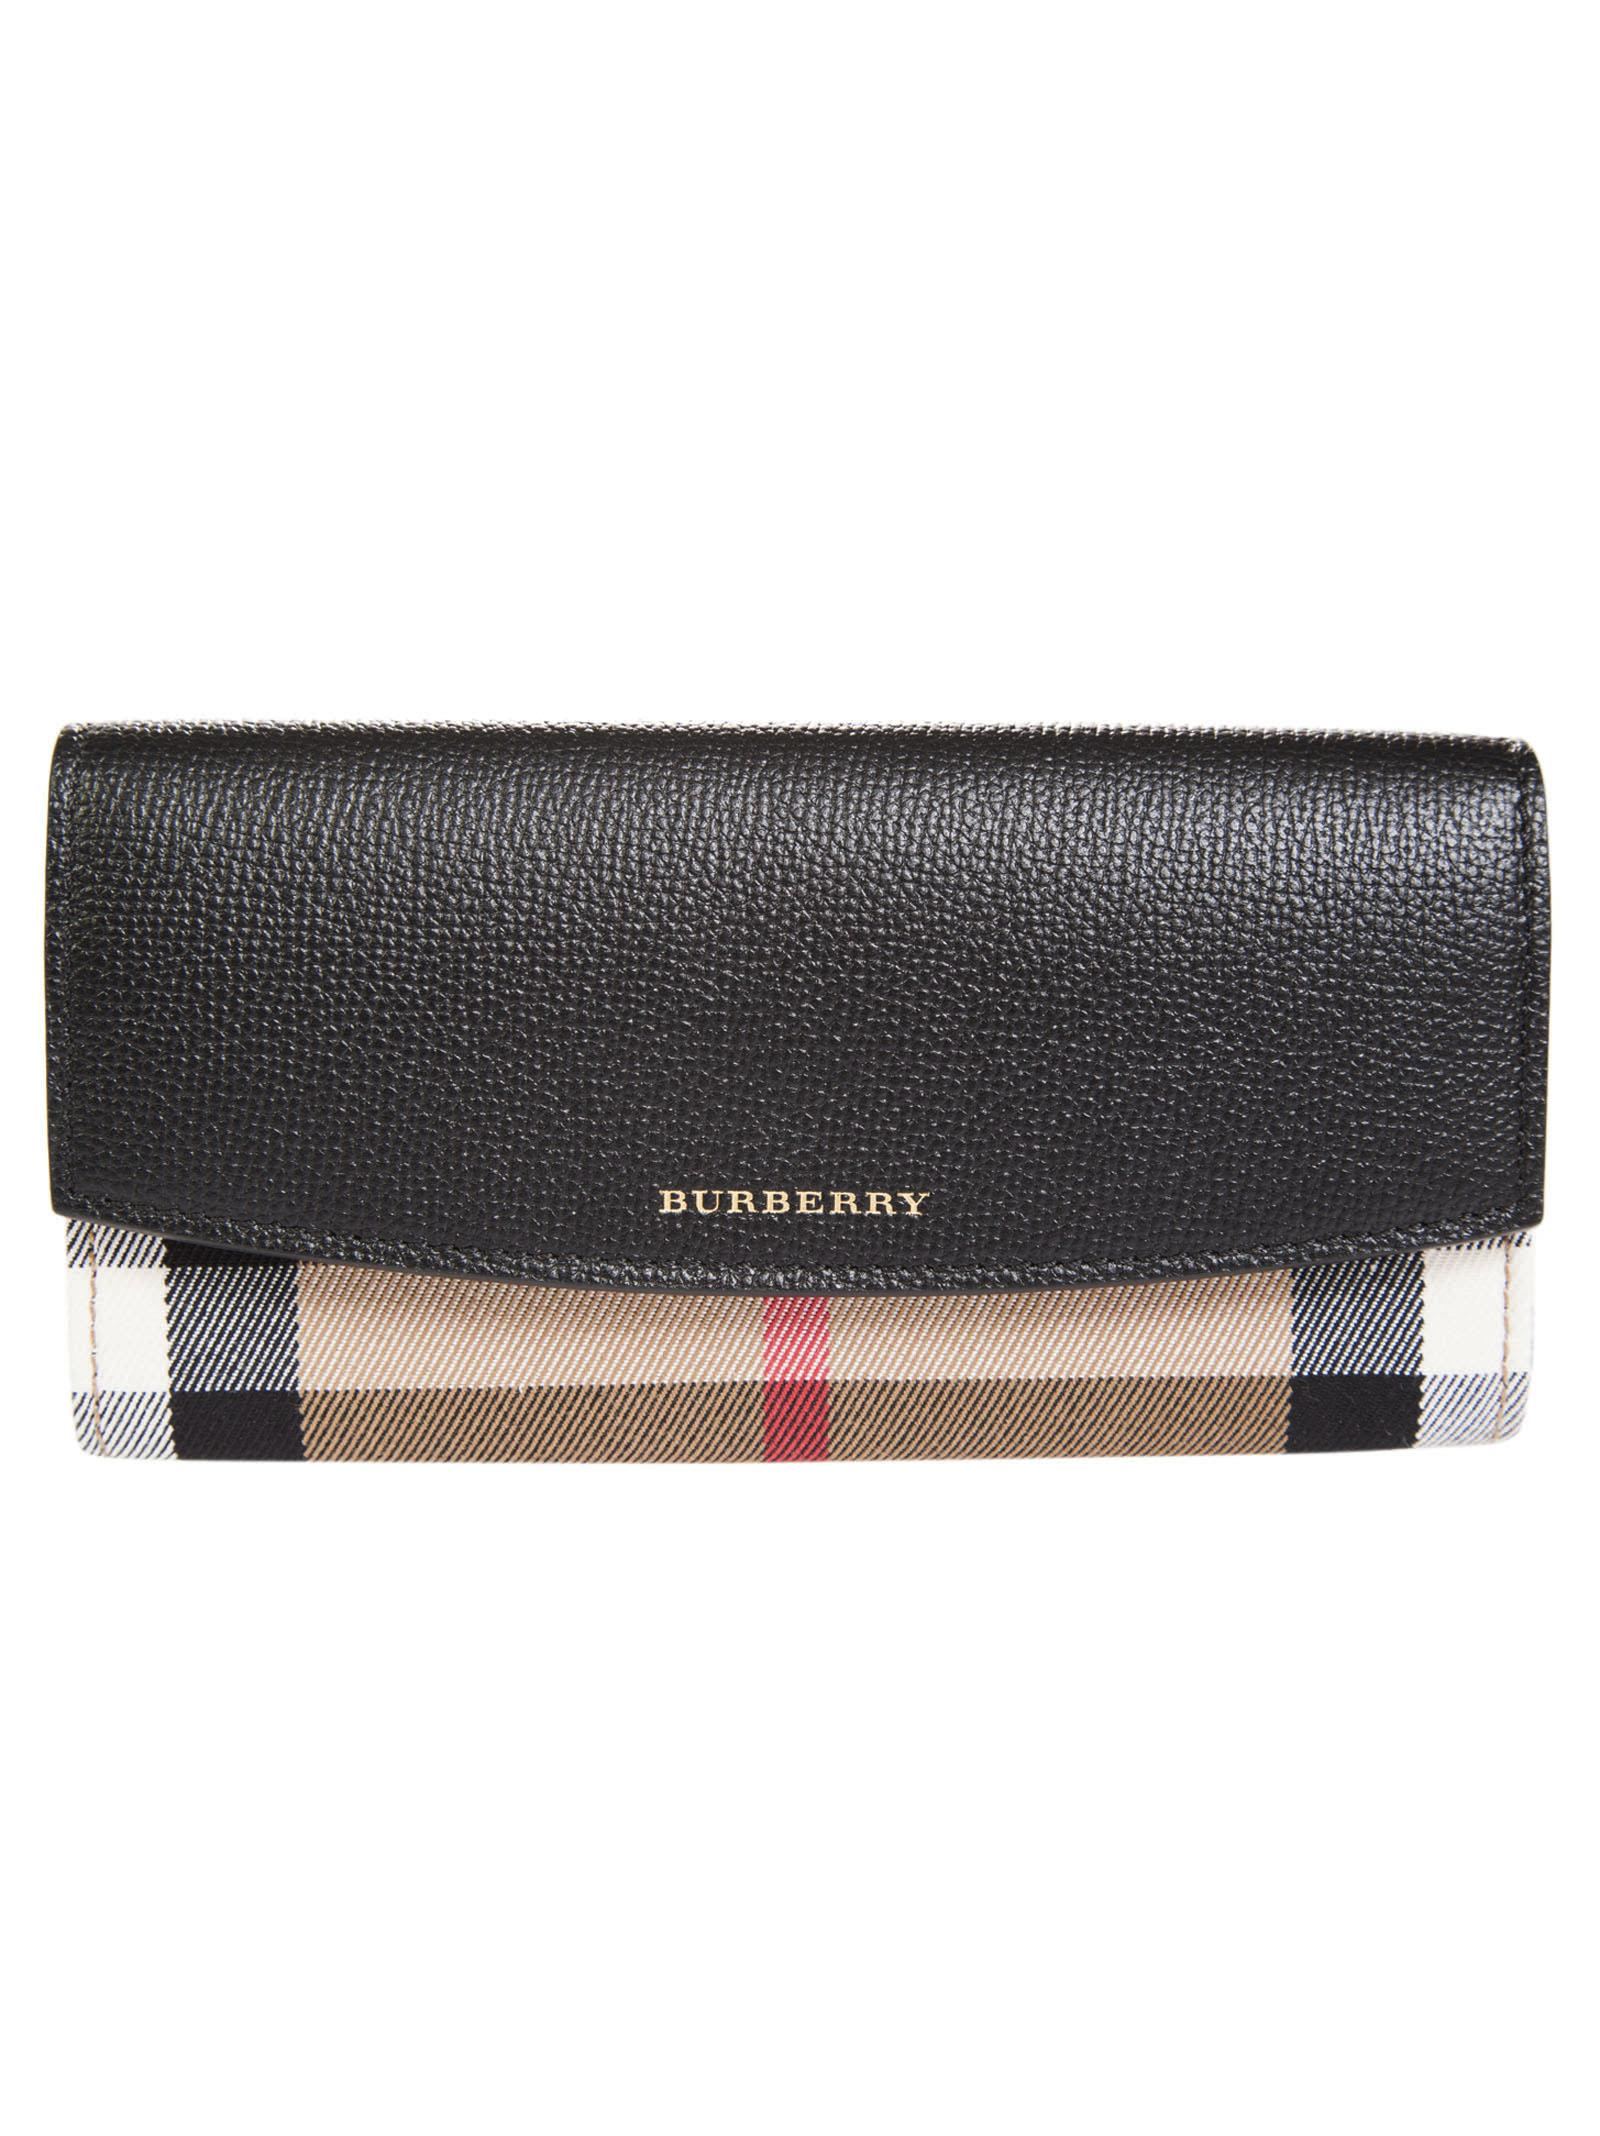 Burberry Check Detail Continental Wallet